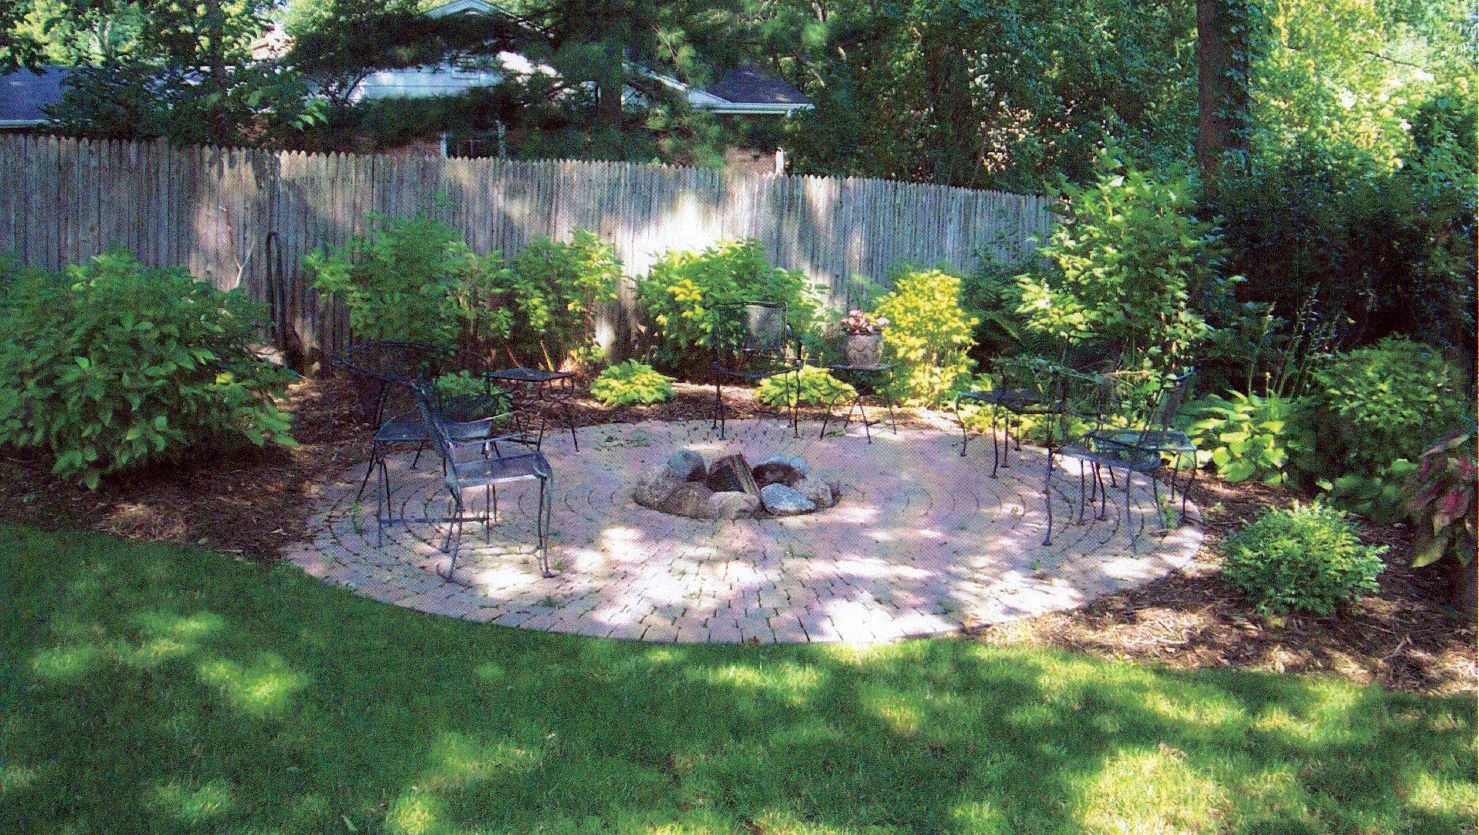 Patio Design Ideas For Small Backyards landscape ideas for small backyard diy small backyard ideas best home design ideas gallery landscape surprising Landscaping Ideas For Small Backyard 23 Small Backyard Ideas How To Make Them Look Spacious And